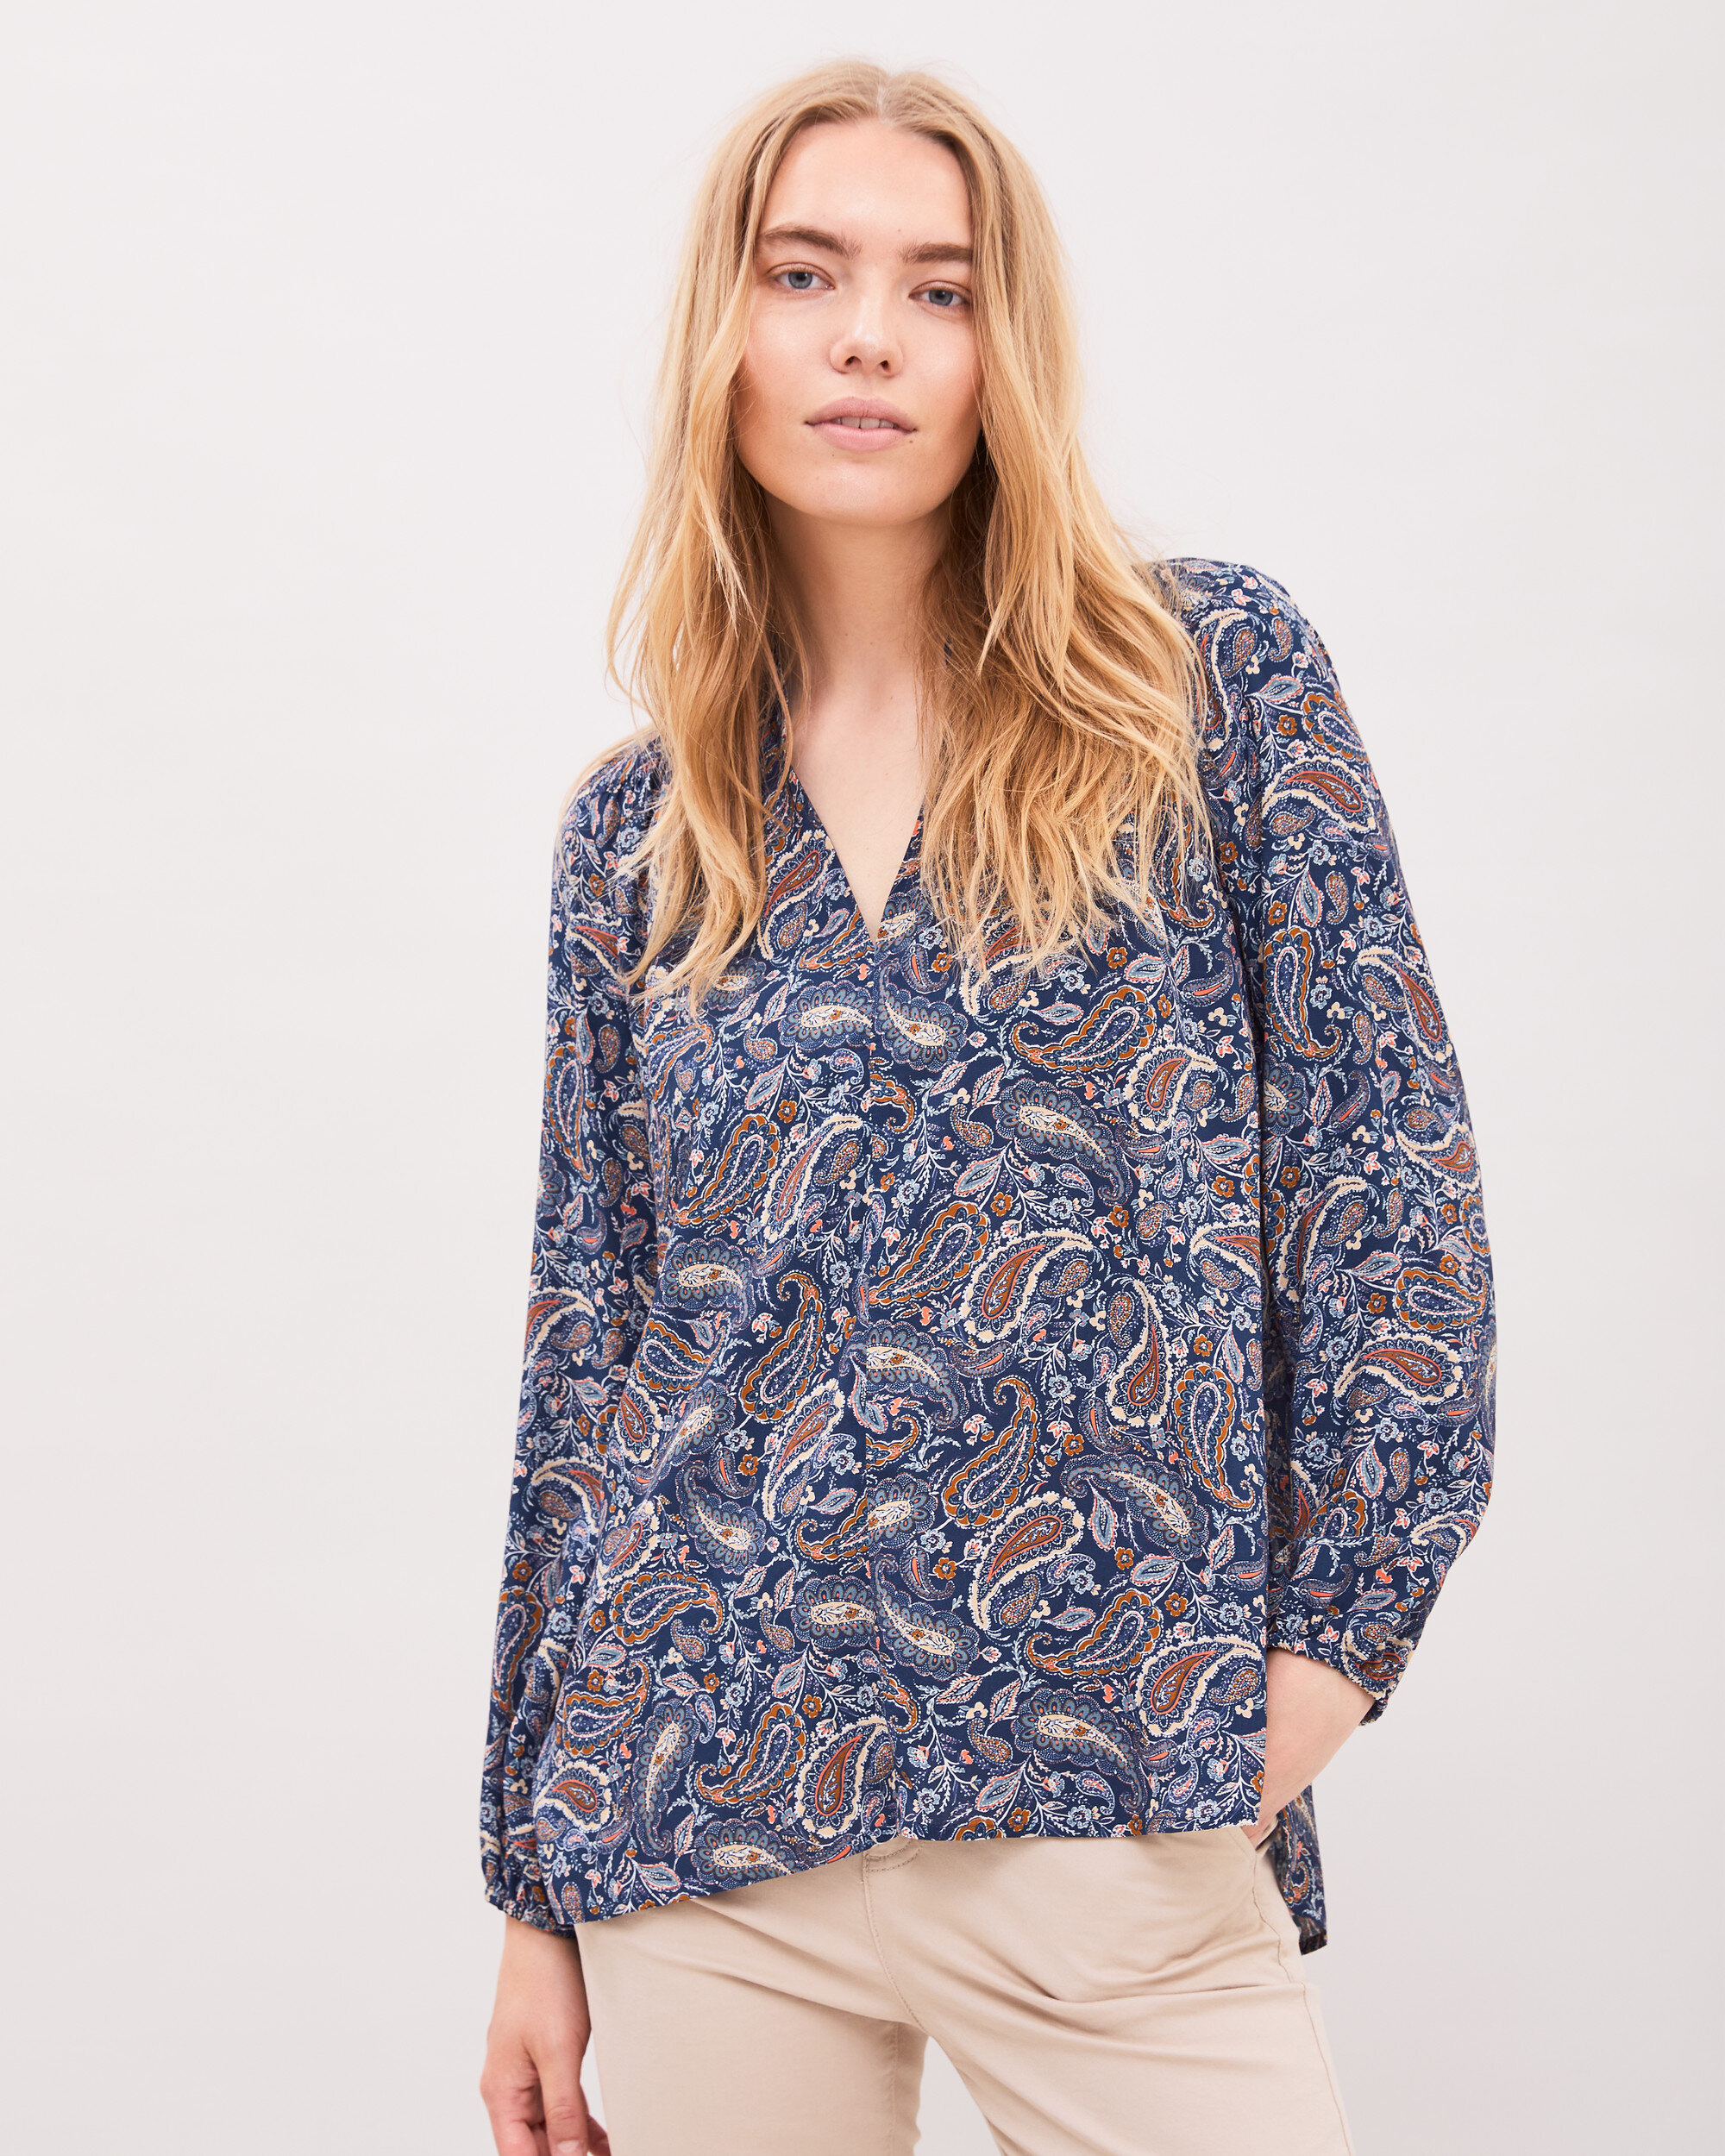 The Paisley Blouse